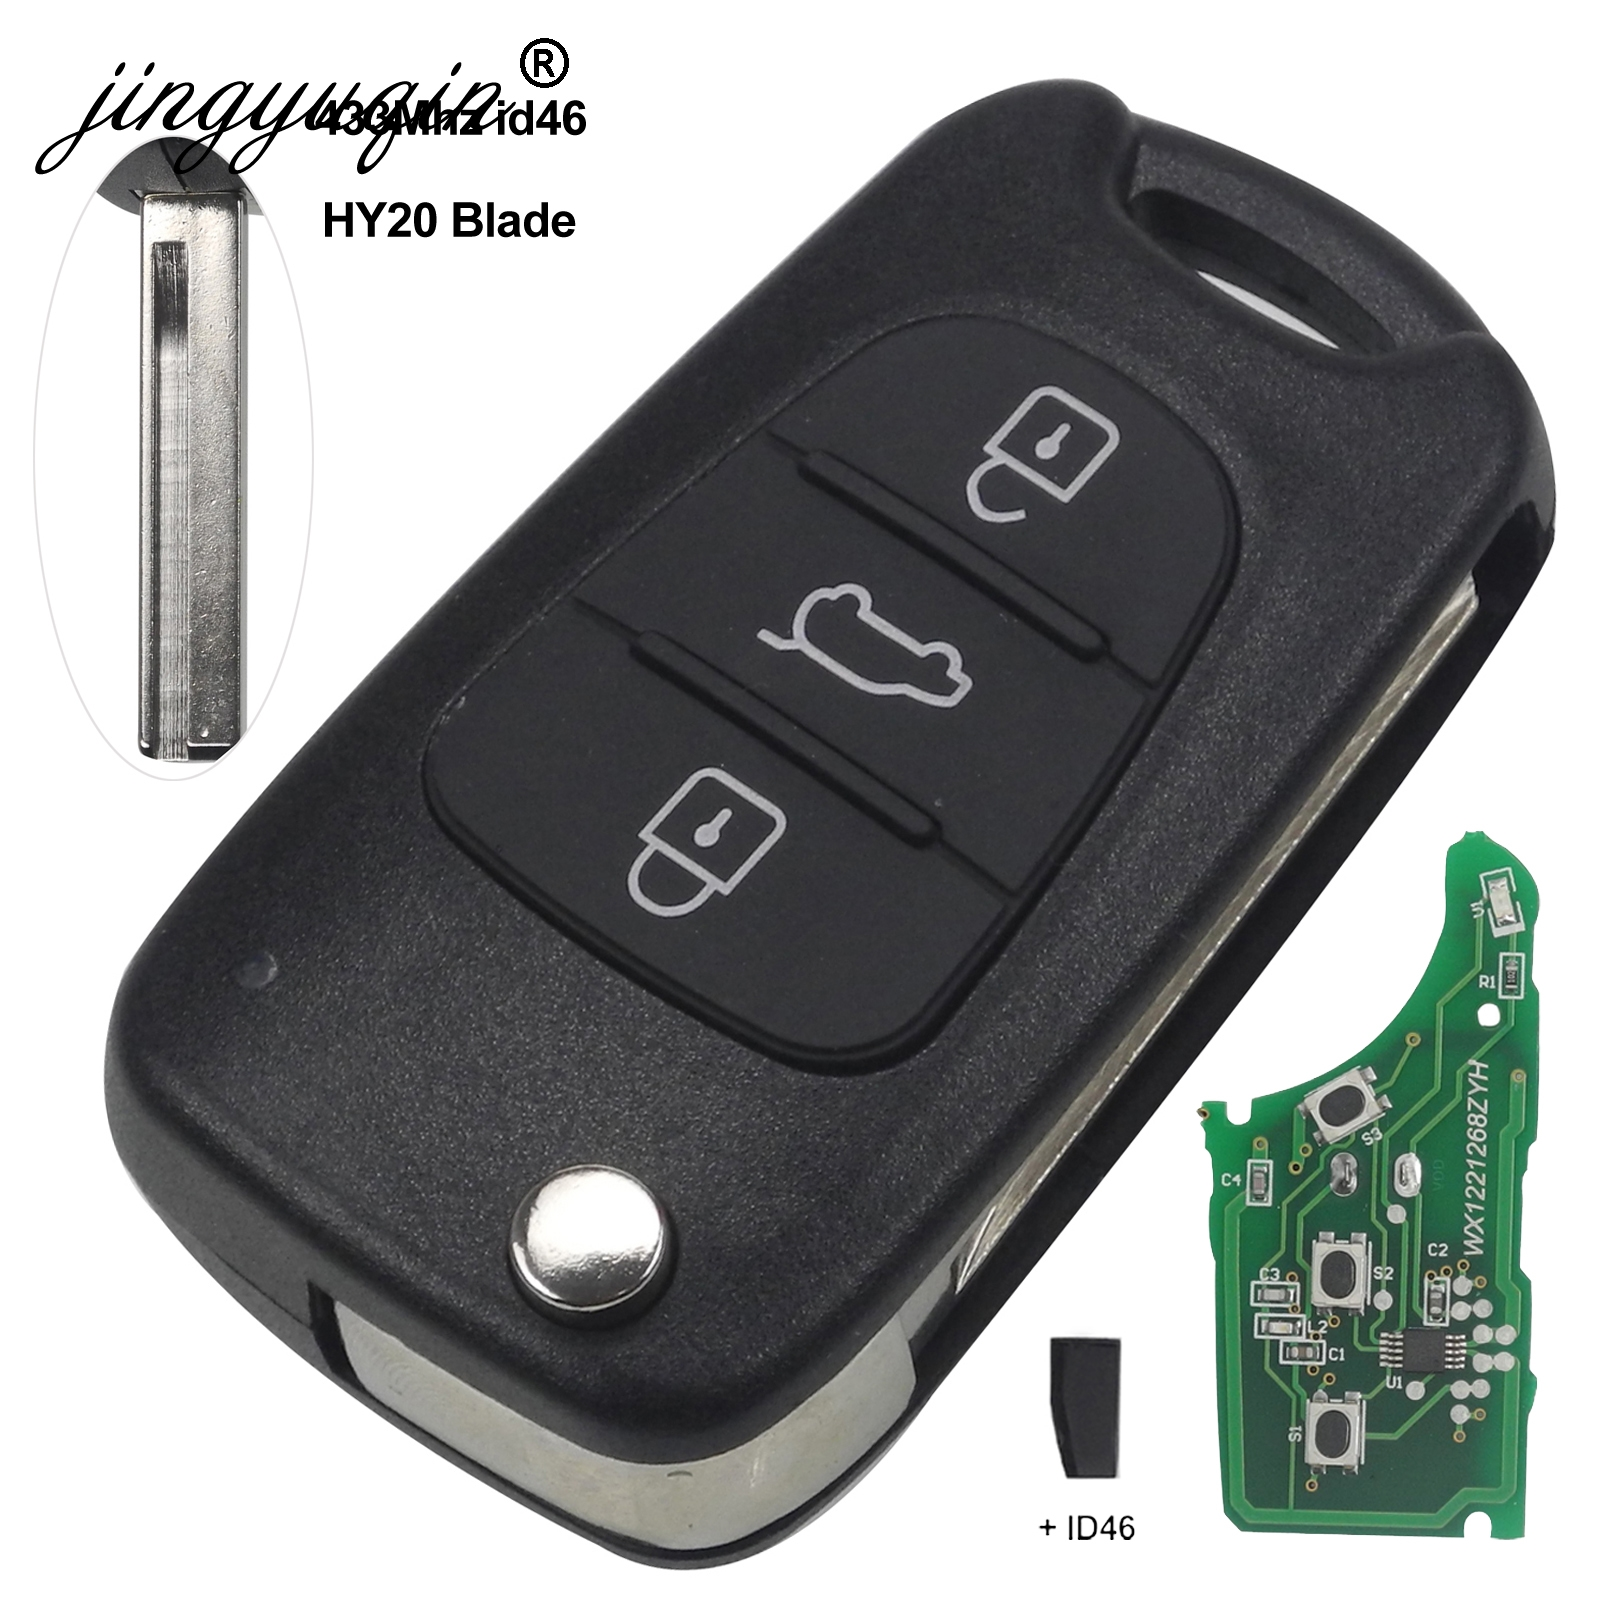 Image 3 - jingyuqin For Hyundai I20 I30 IX35 Avante 433Mhz ID46 Chip 3 Buttons Flip Folding Car Remote Key Fob-in Car Key from Automobiles & Motorcycles